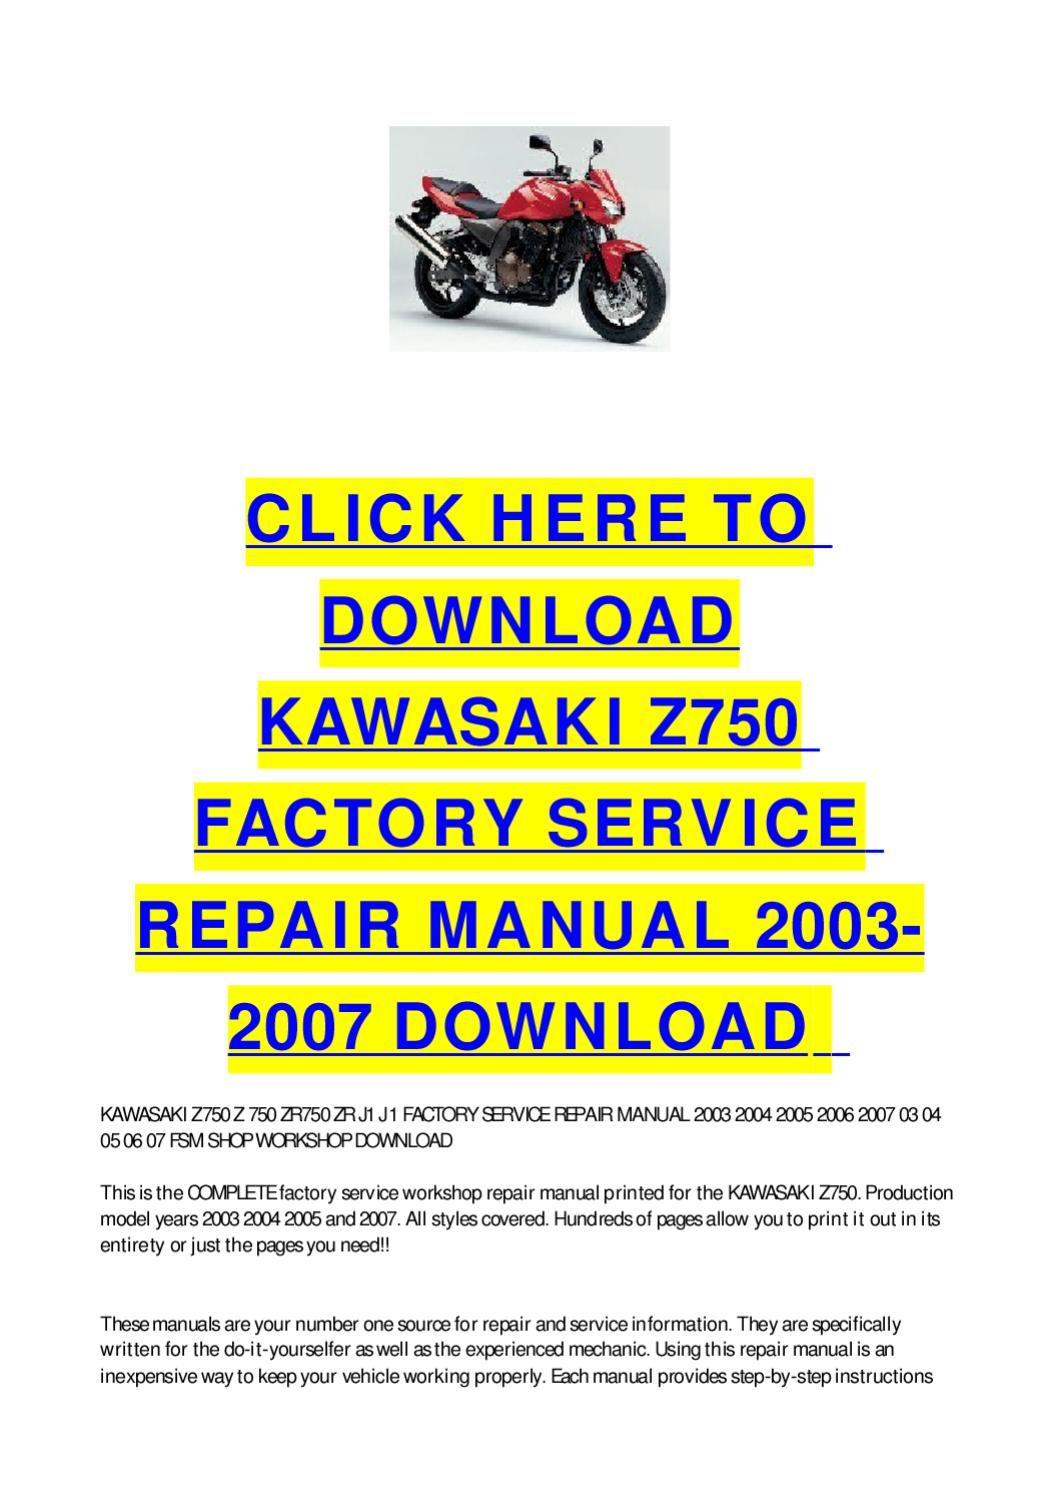 Kawasaki Z750 Factory Service Repair Manual 2003 2007 Download Repair Manuals Repair Manual